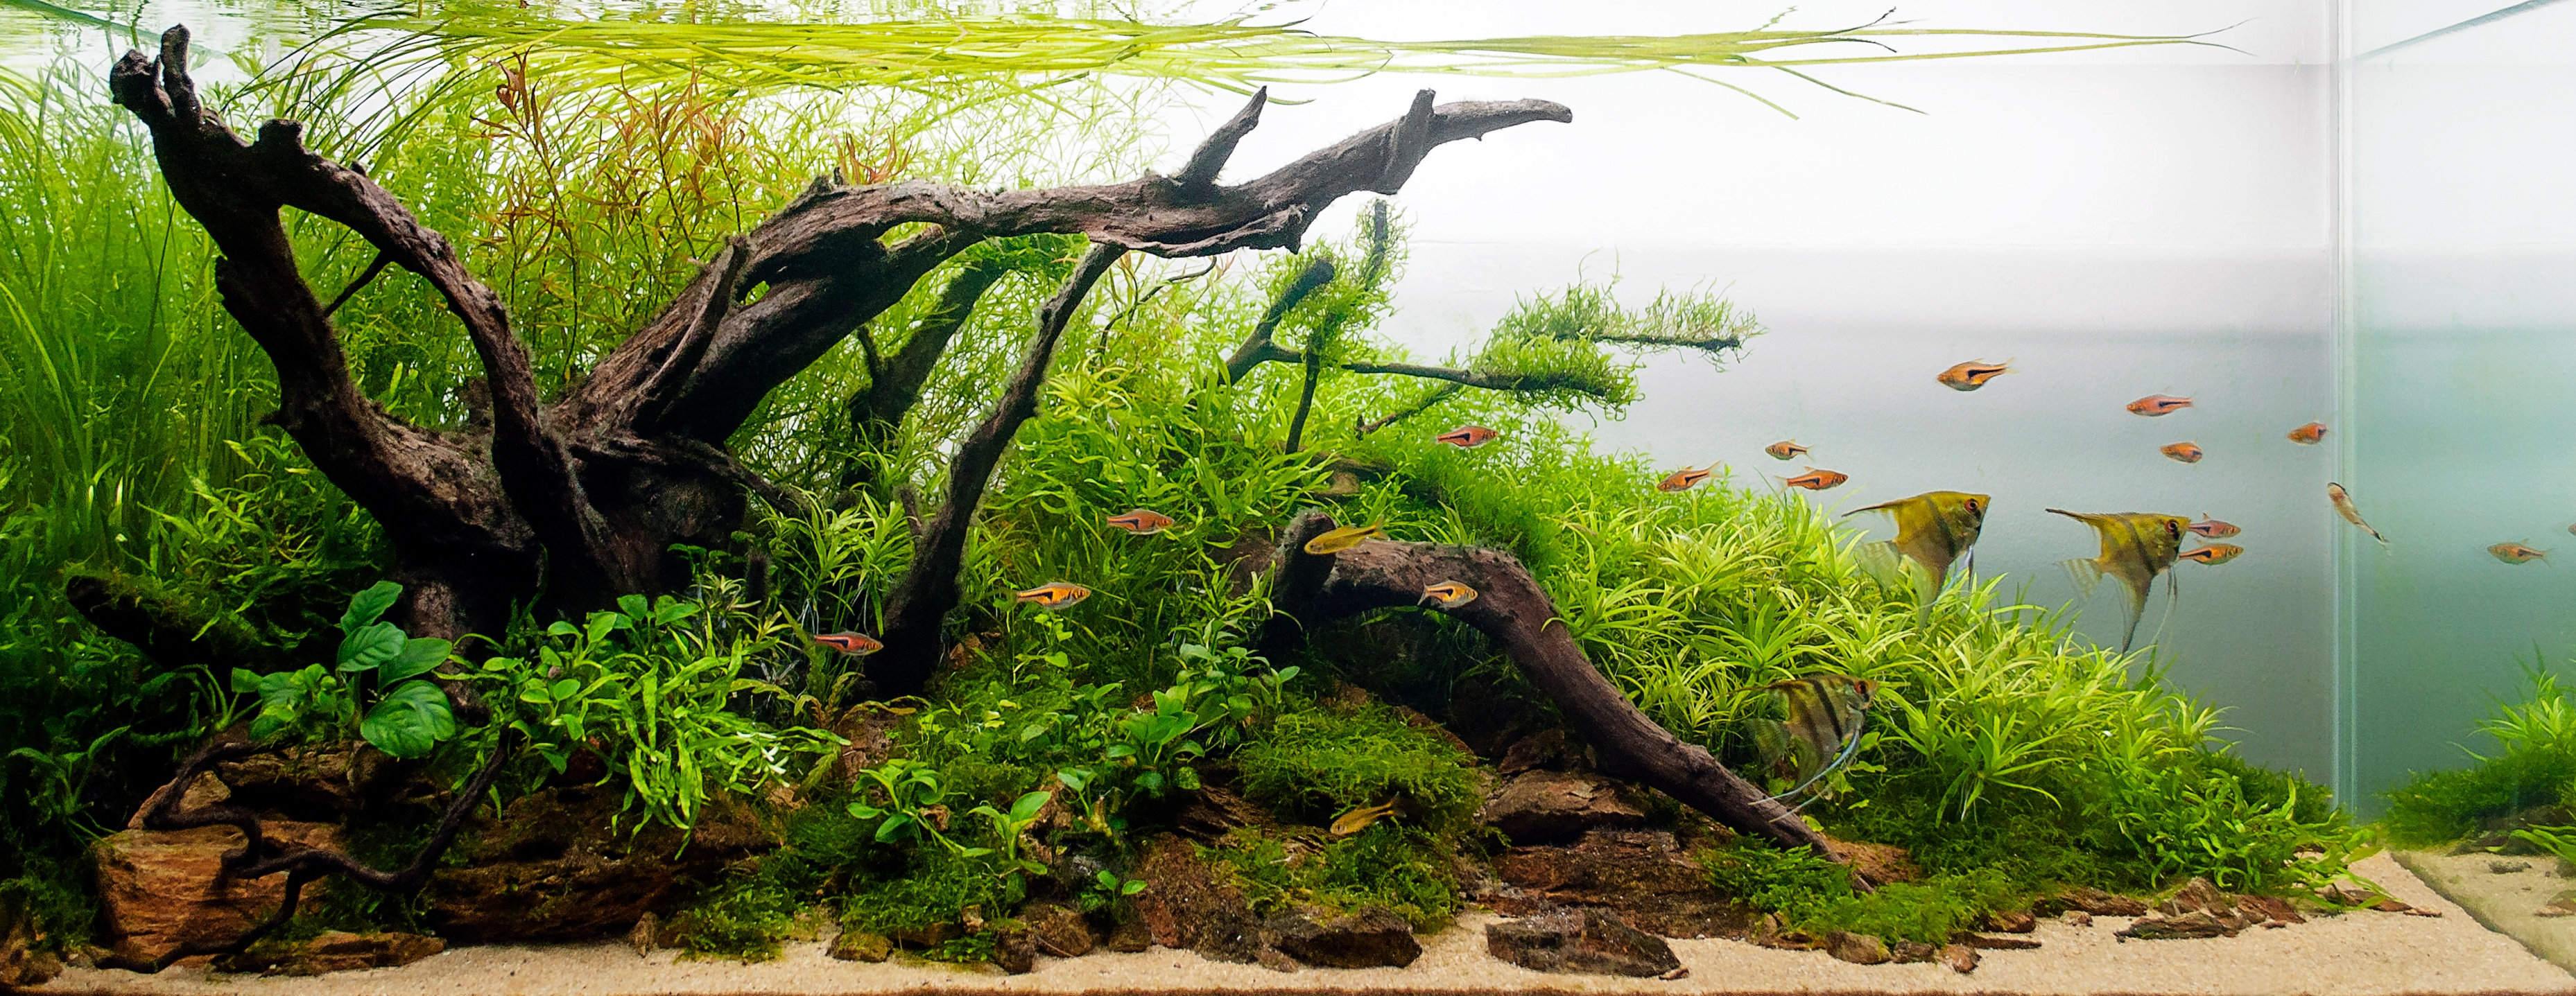 Freshwater planted tank with fish